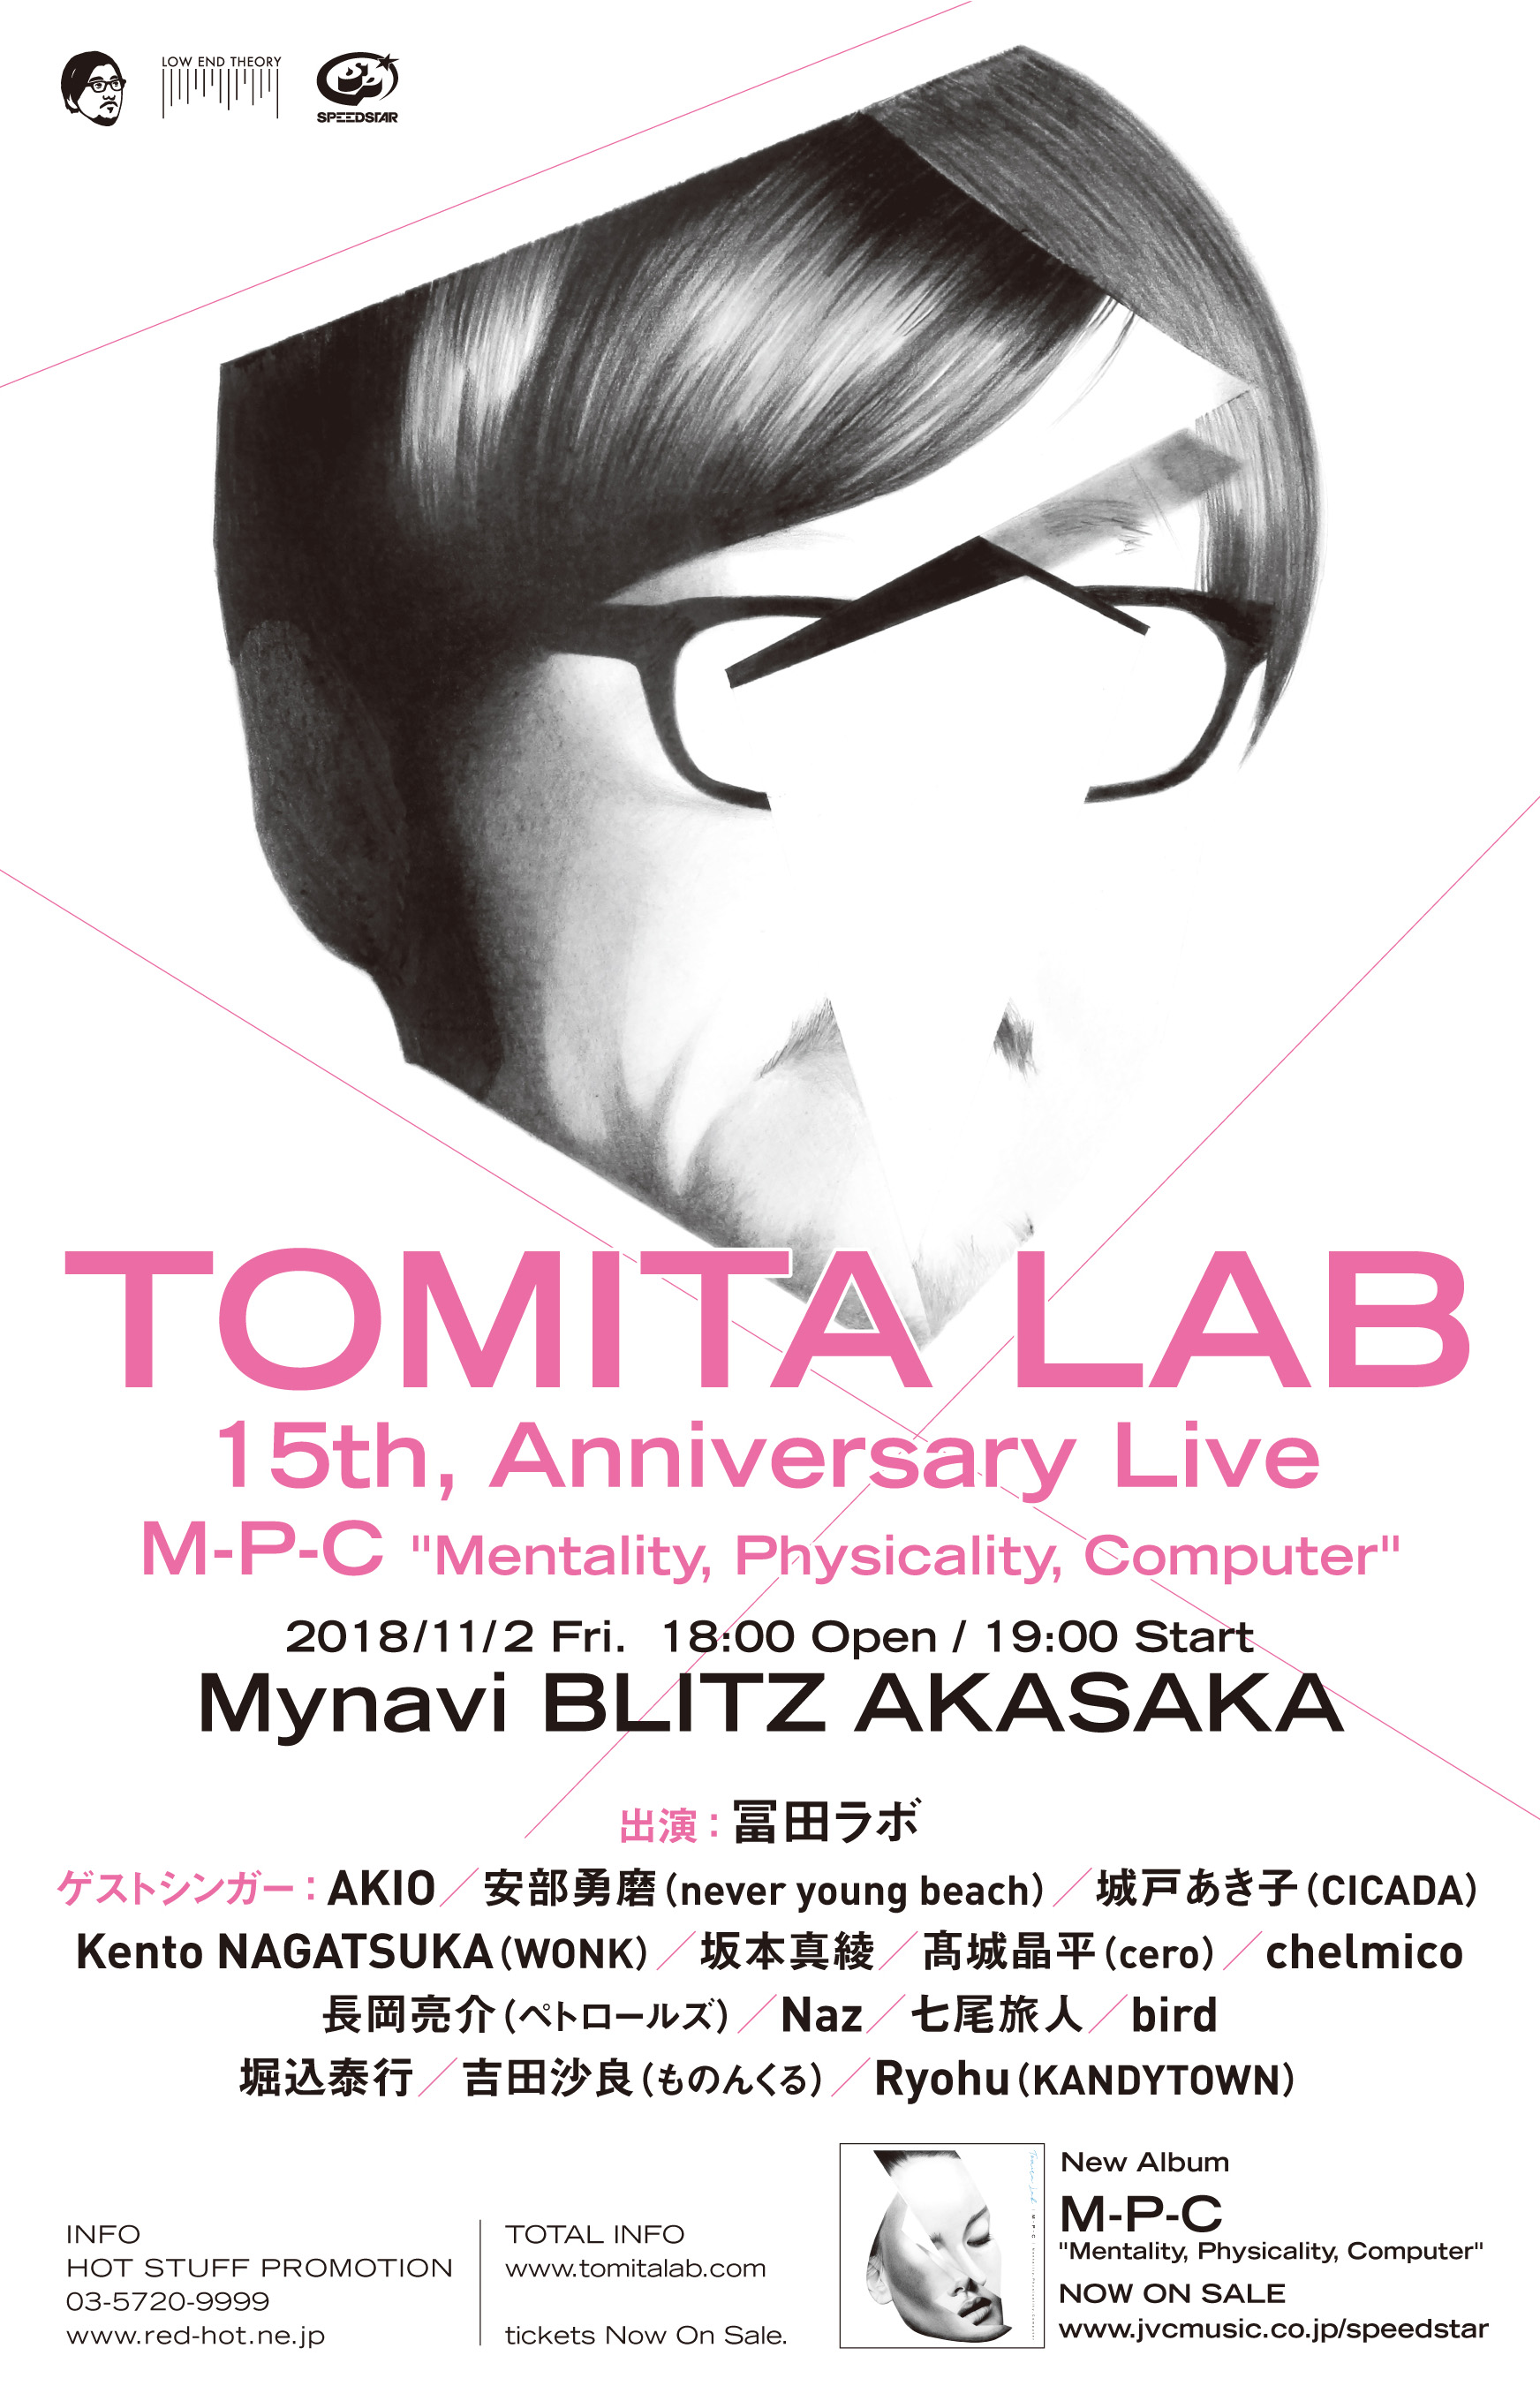 tomitalab_flyer_A5_ver2_high.jpg